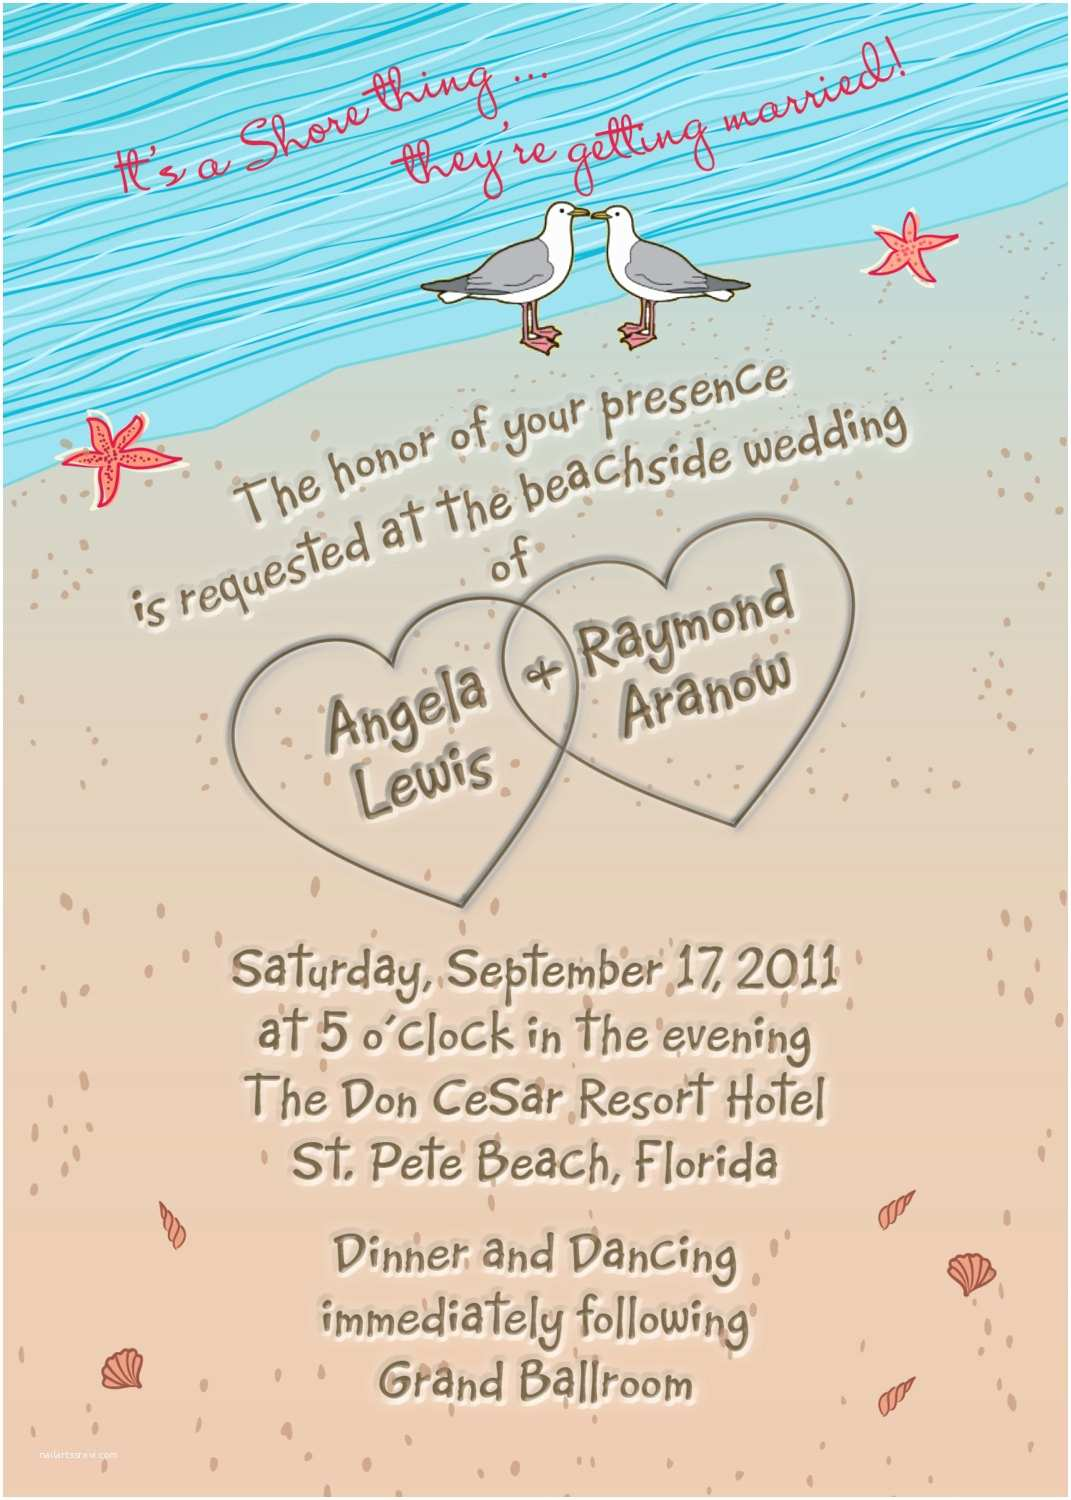 Unique Wedding Invitation Wording Beach Wedding Invitation with Hearts In Sand Seagulls and